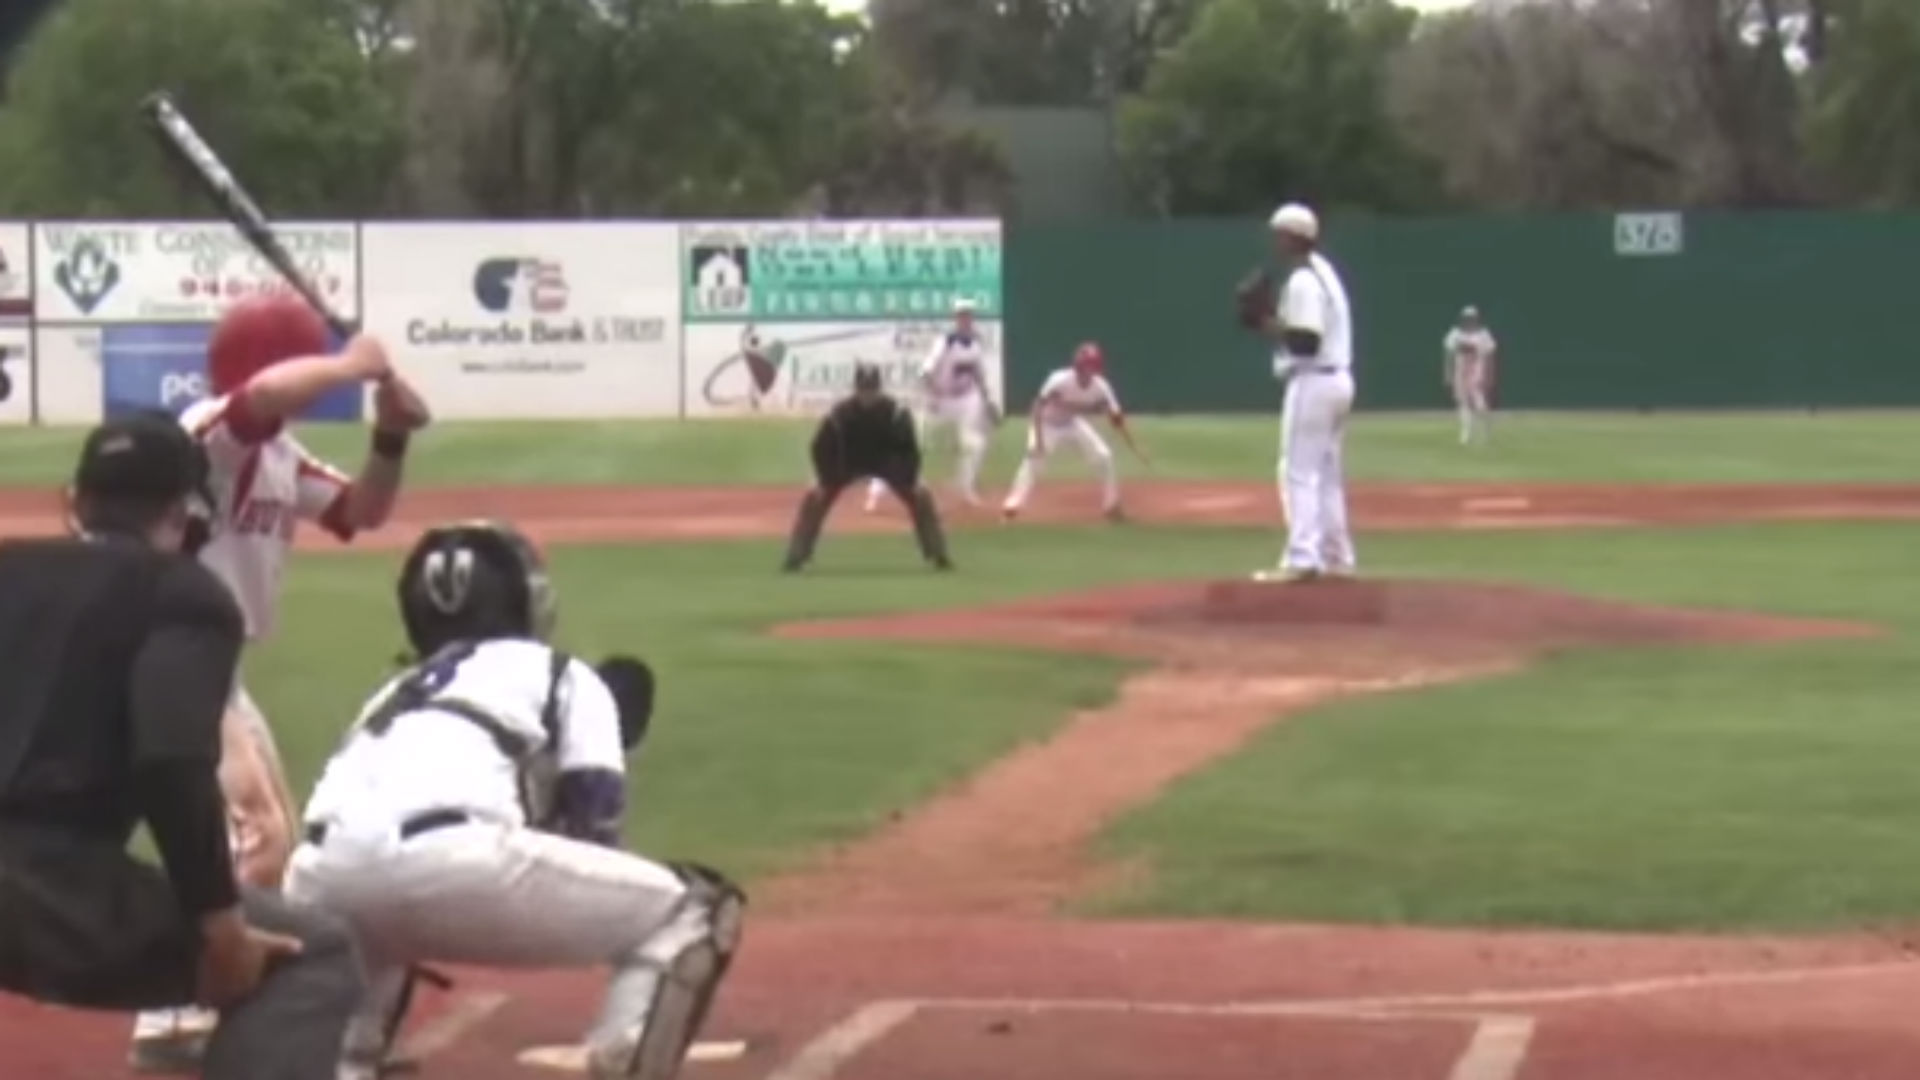 Hidden ball trick on final out propels Colorado high school to state title game